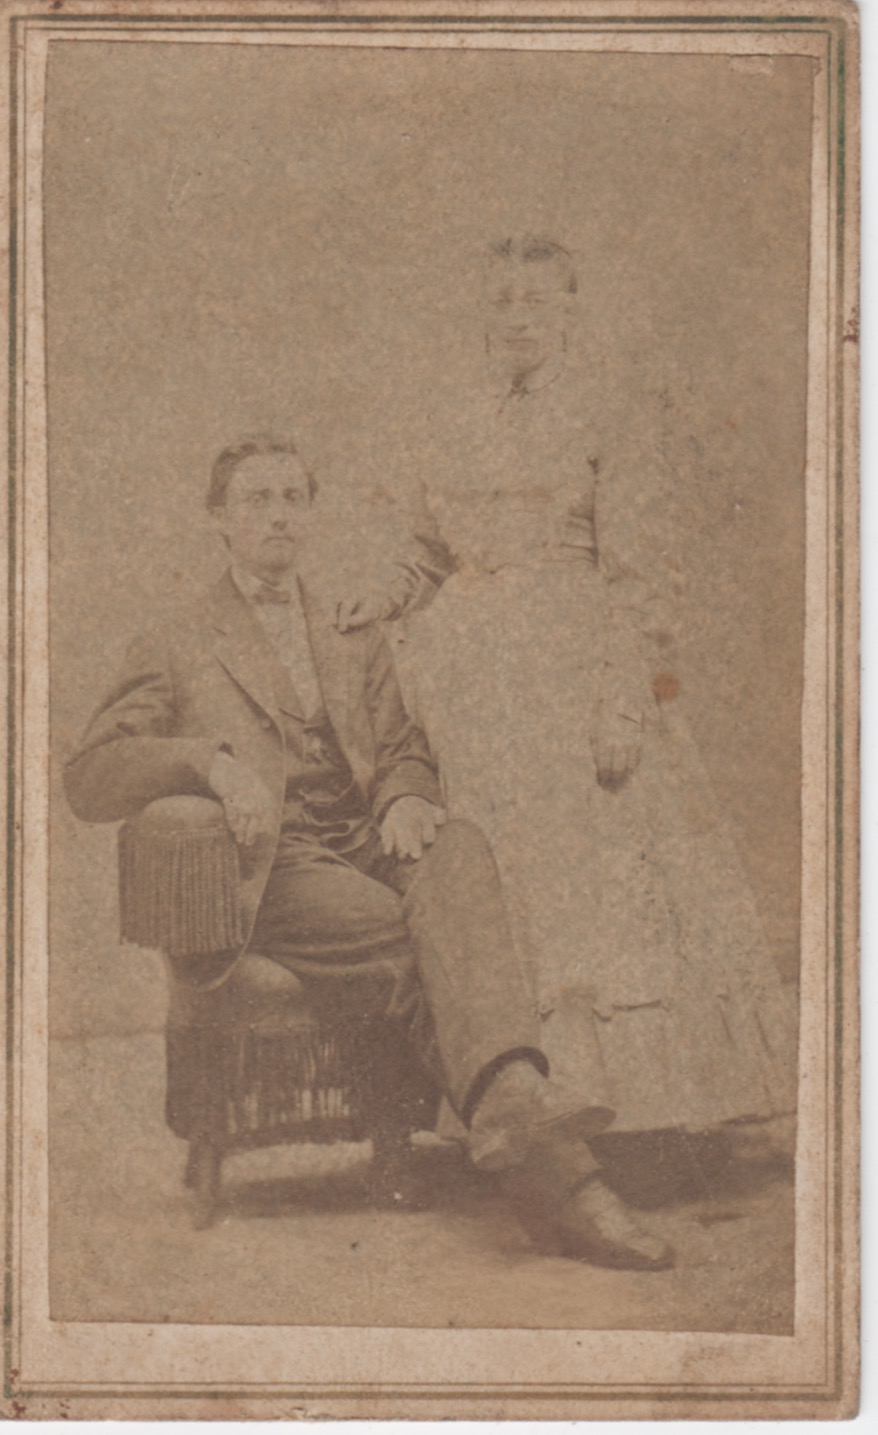 This certainly seems to be a different couple than the previous. It appears very old, but unlike the previous it does not appear to be a tintype.